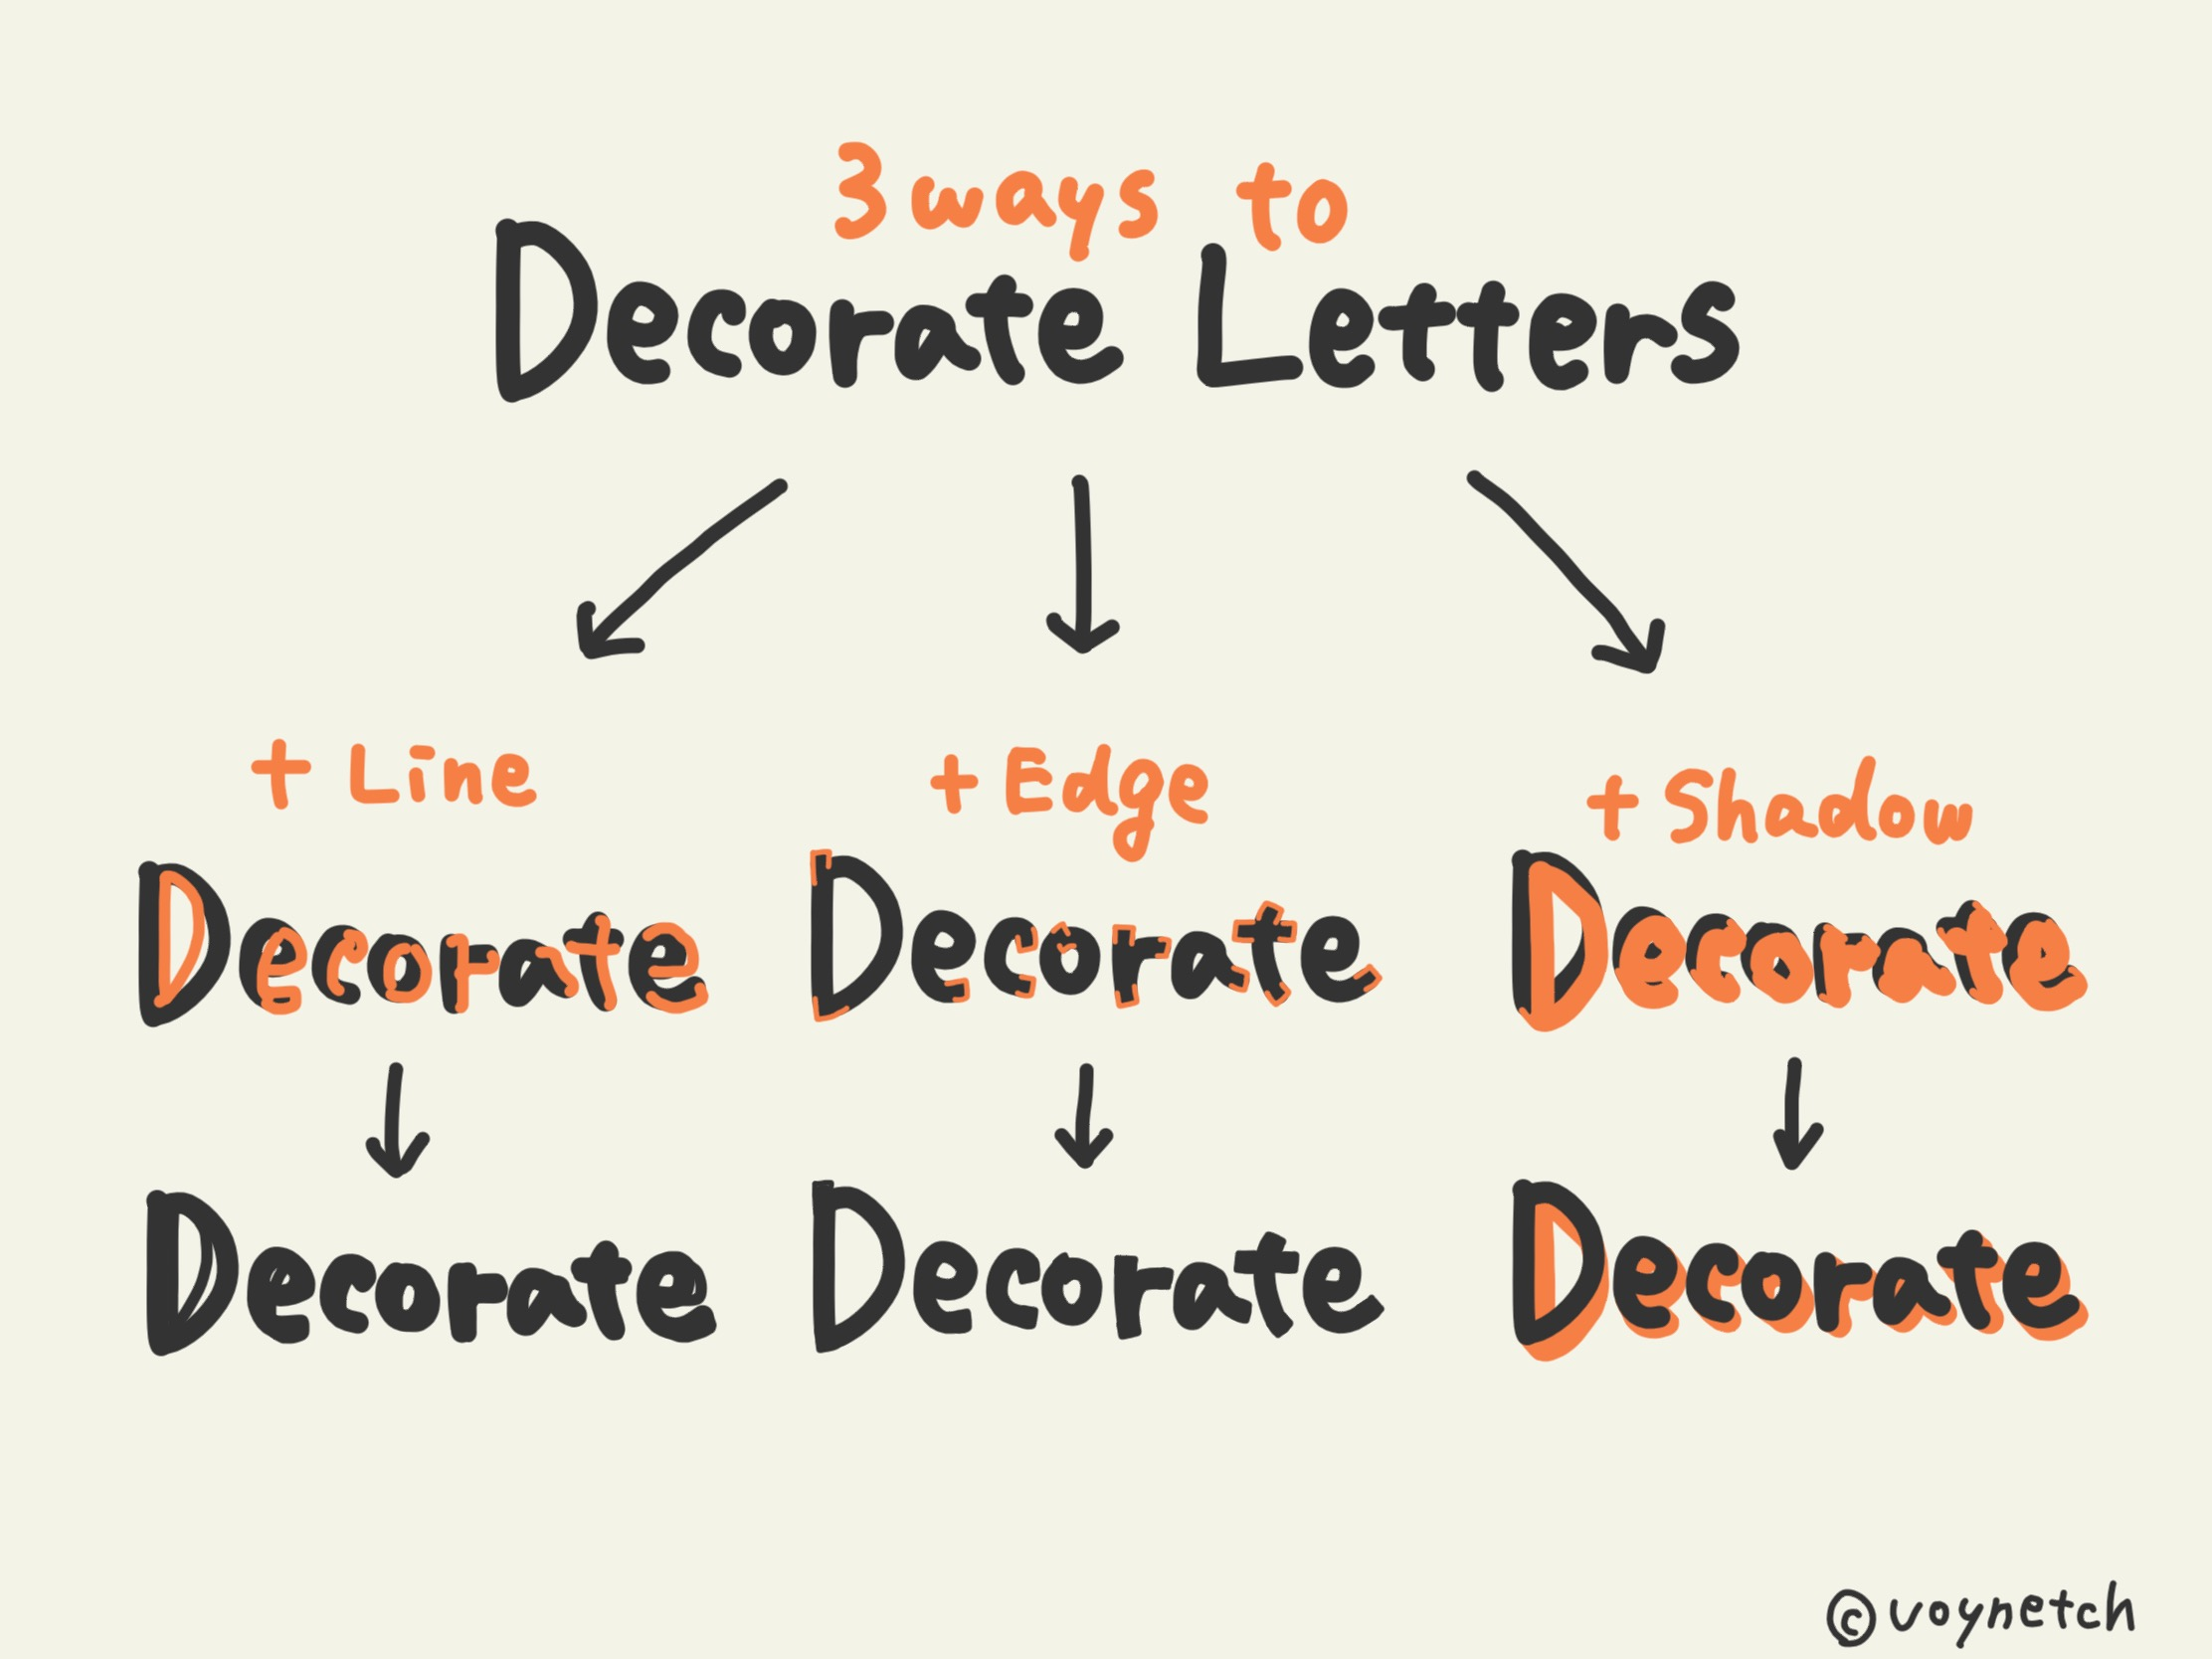 3 Ways to Decorate Letters Image